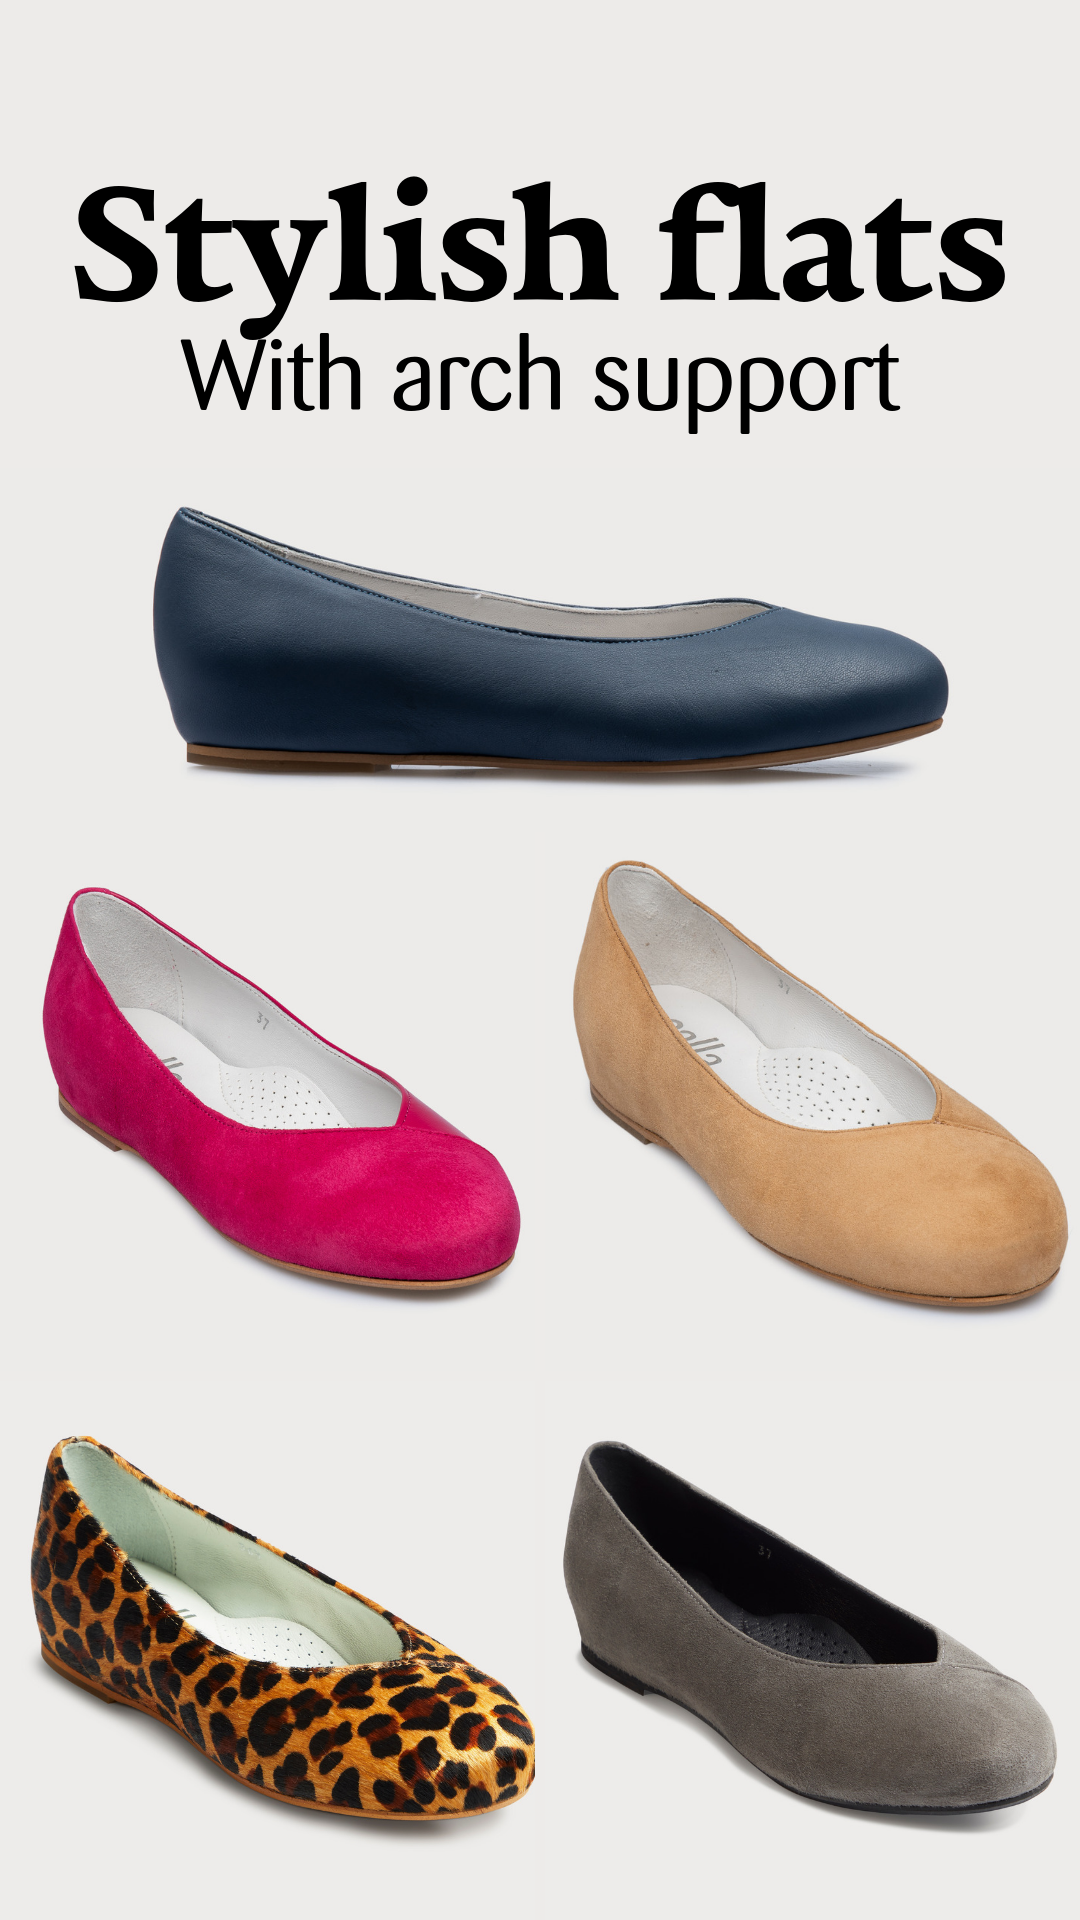 c39ca46d Don't underestimate arch support, it is crucial in making sure that your  shoes are comfortable. These stylish flats feature arch support, ...